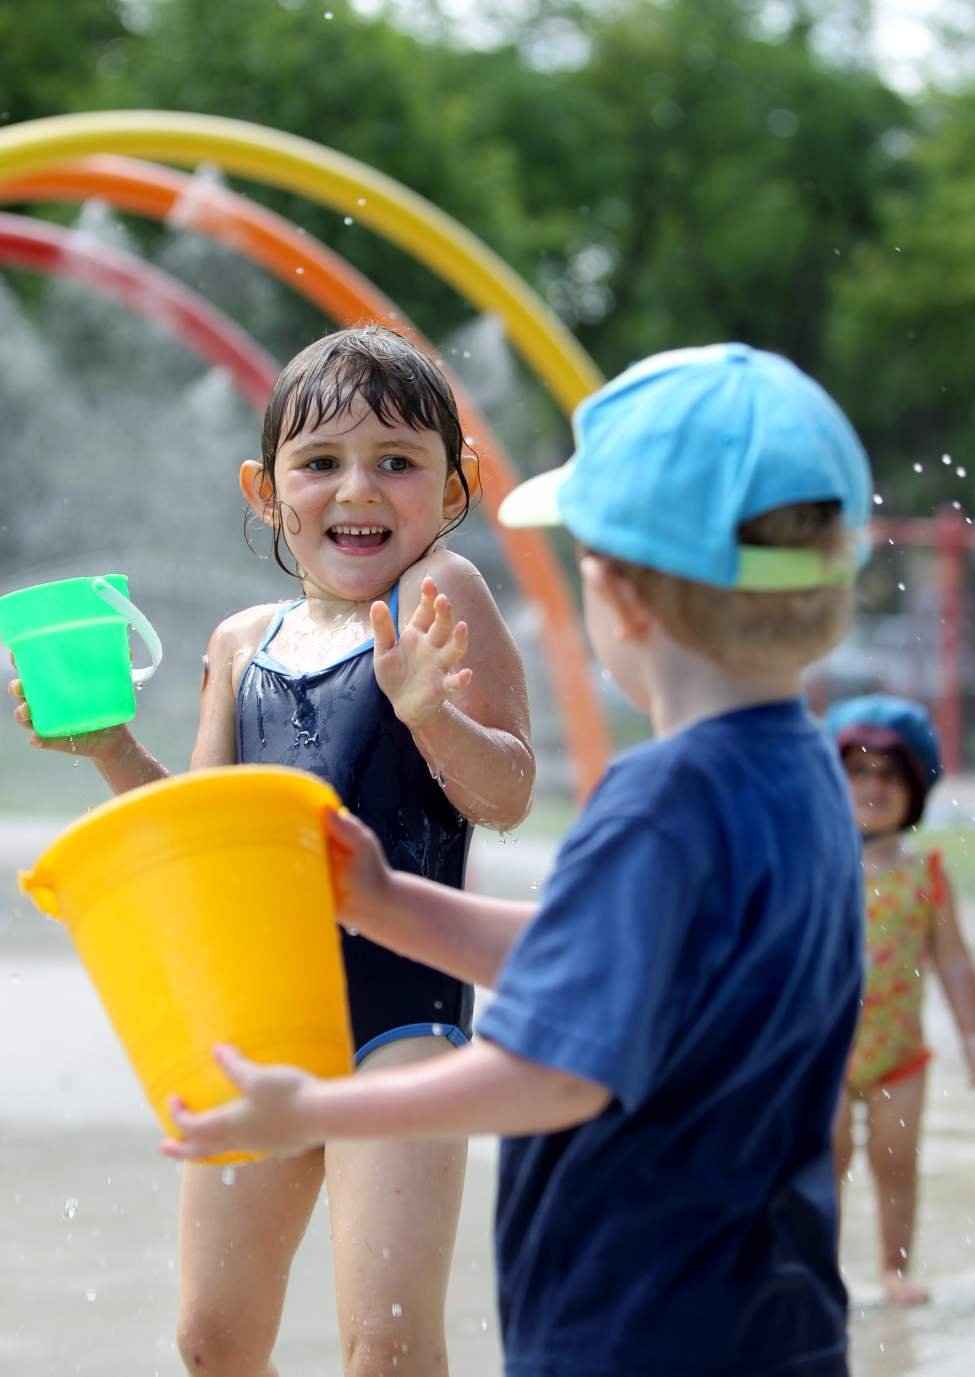 Four year old Leah Noel winces as her cousin Jean-Michel Gendron, 3, sprays her with water while playing at the Provencher Park Spray Pad.  July 5 2010